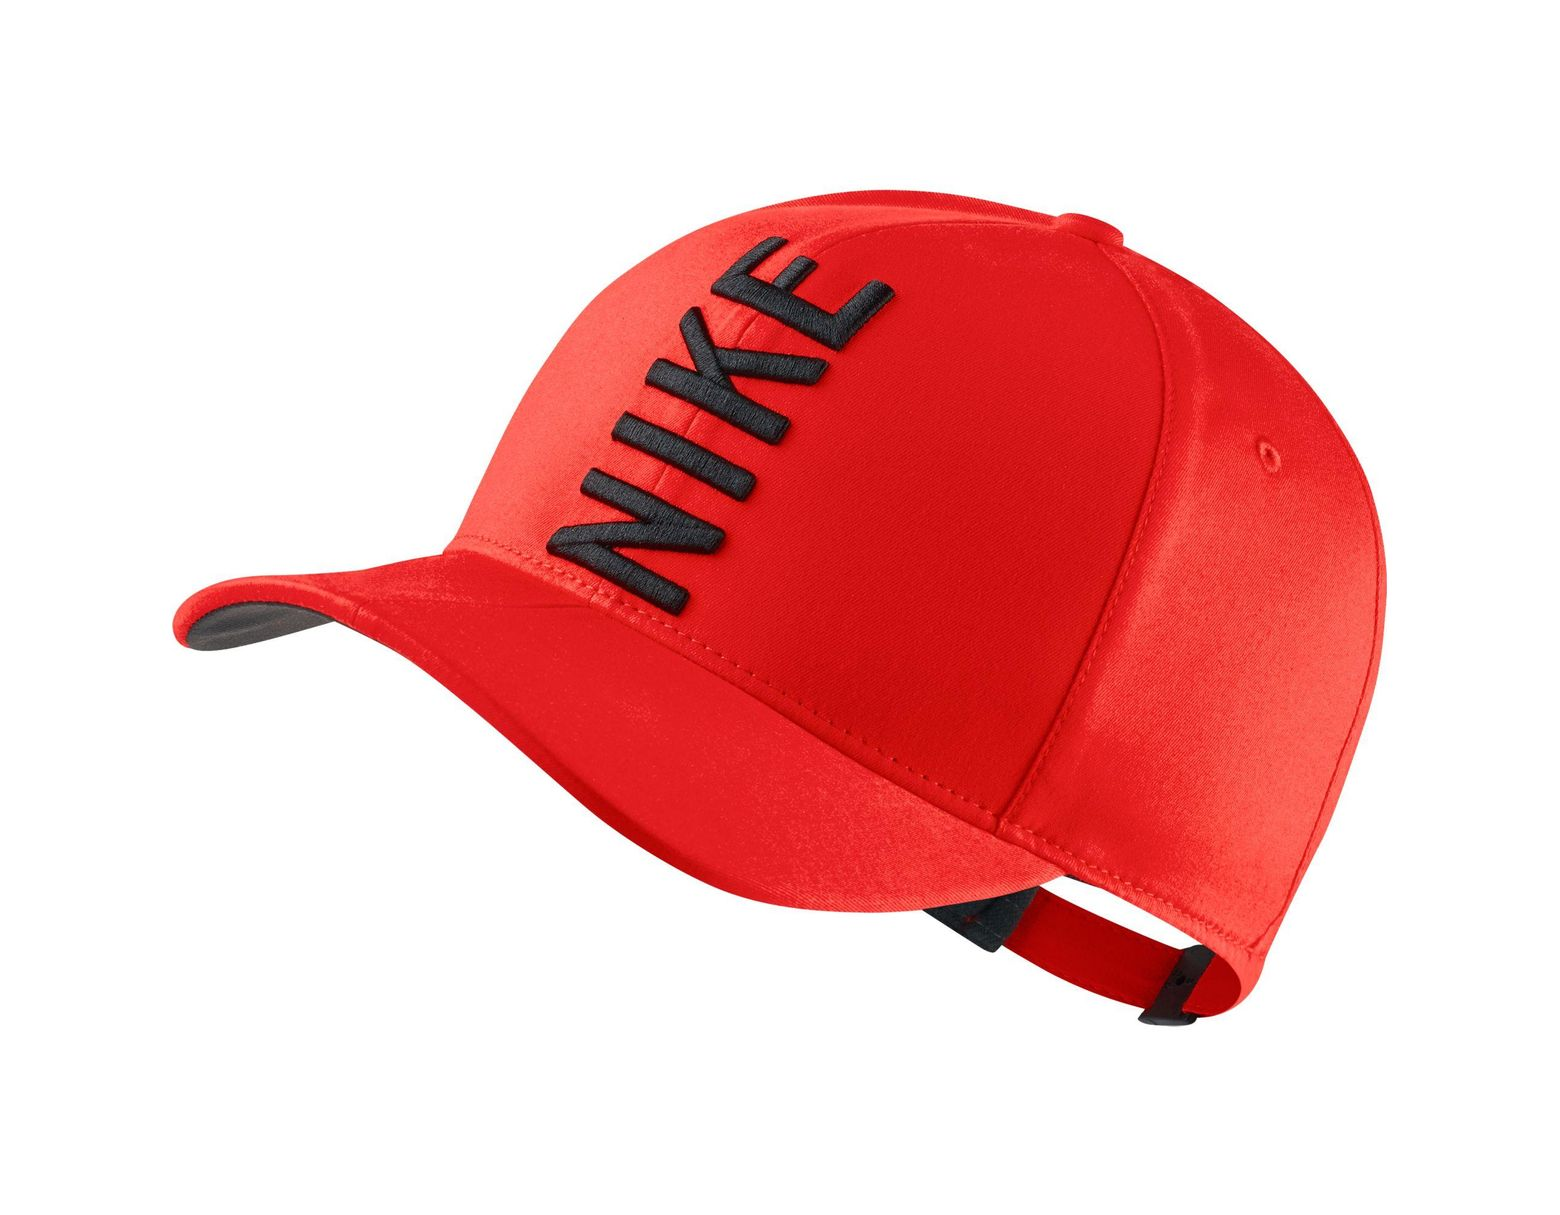 371c224e Nike Aerobill Classic99 Golf Hat in Red for Men - Lyst